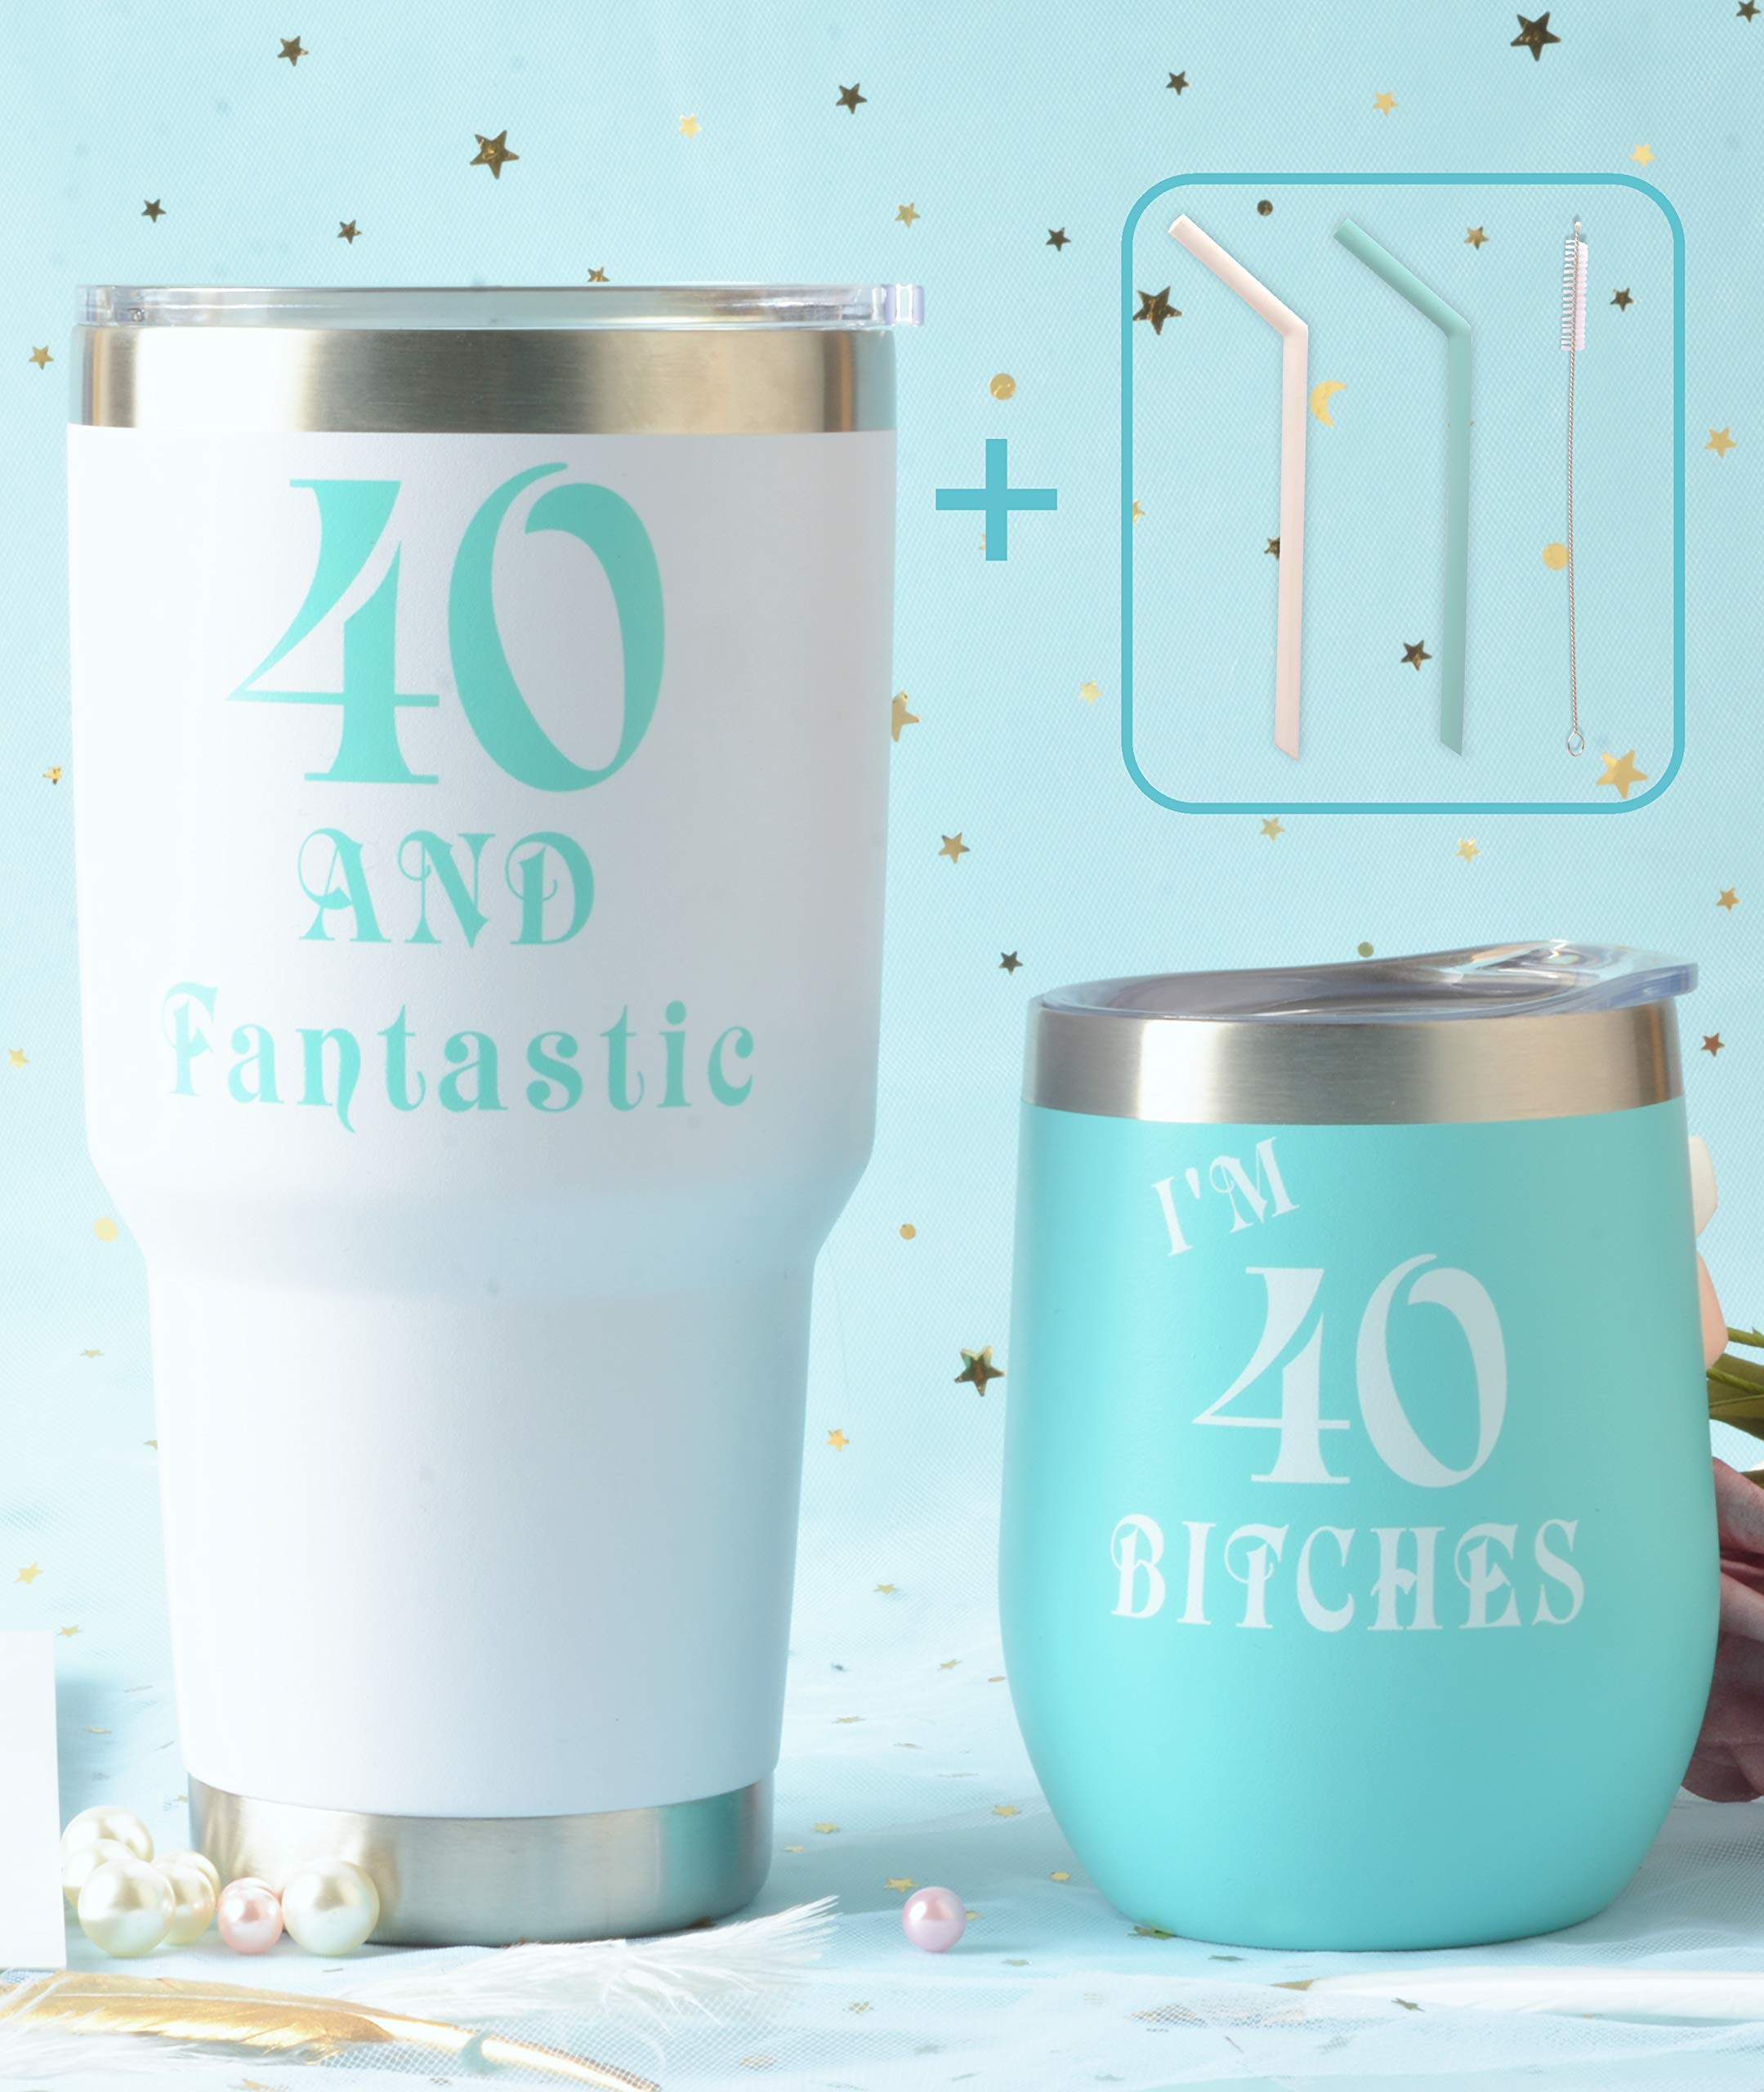 40th Birthday Wine Tumbler Mint Pack | Forty and Fantastic Wine Tumbler | 40 and Fabulous 12oz + 30oz Stainless Steel Wine Glass Tumbler with Lid and Reusable Silicone Straw | 40th Birthday Gift for W